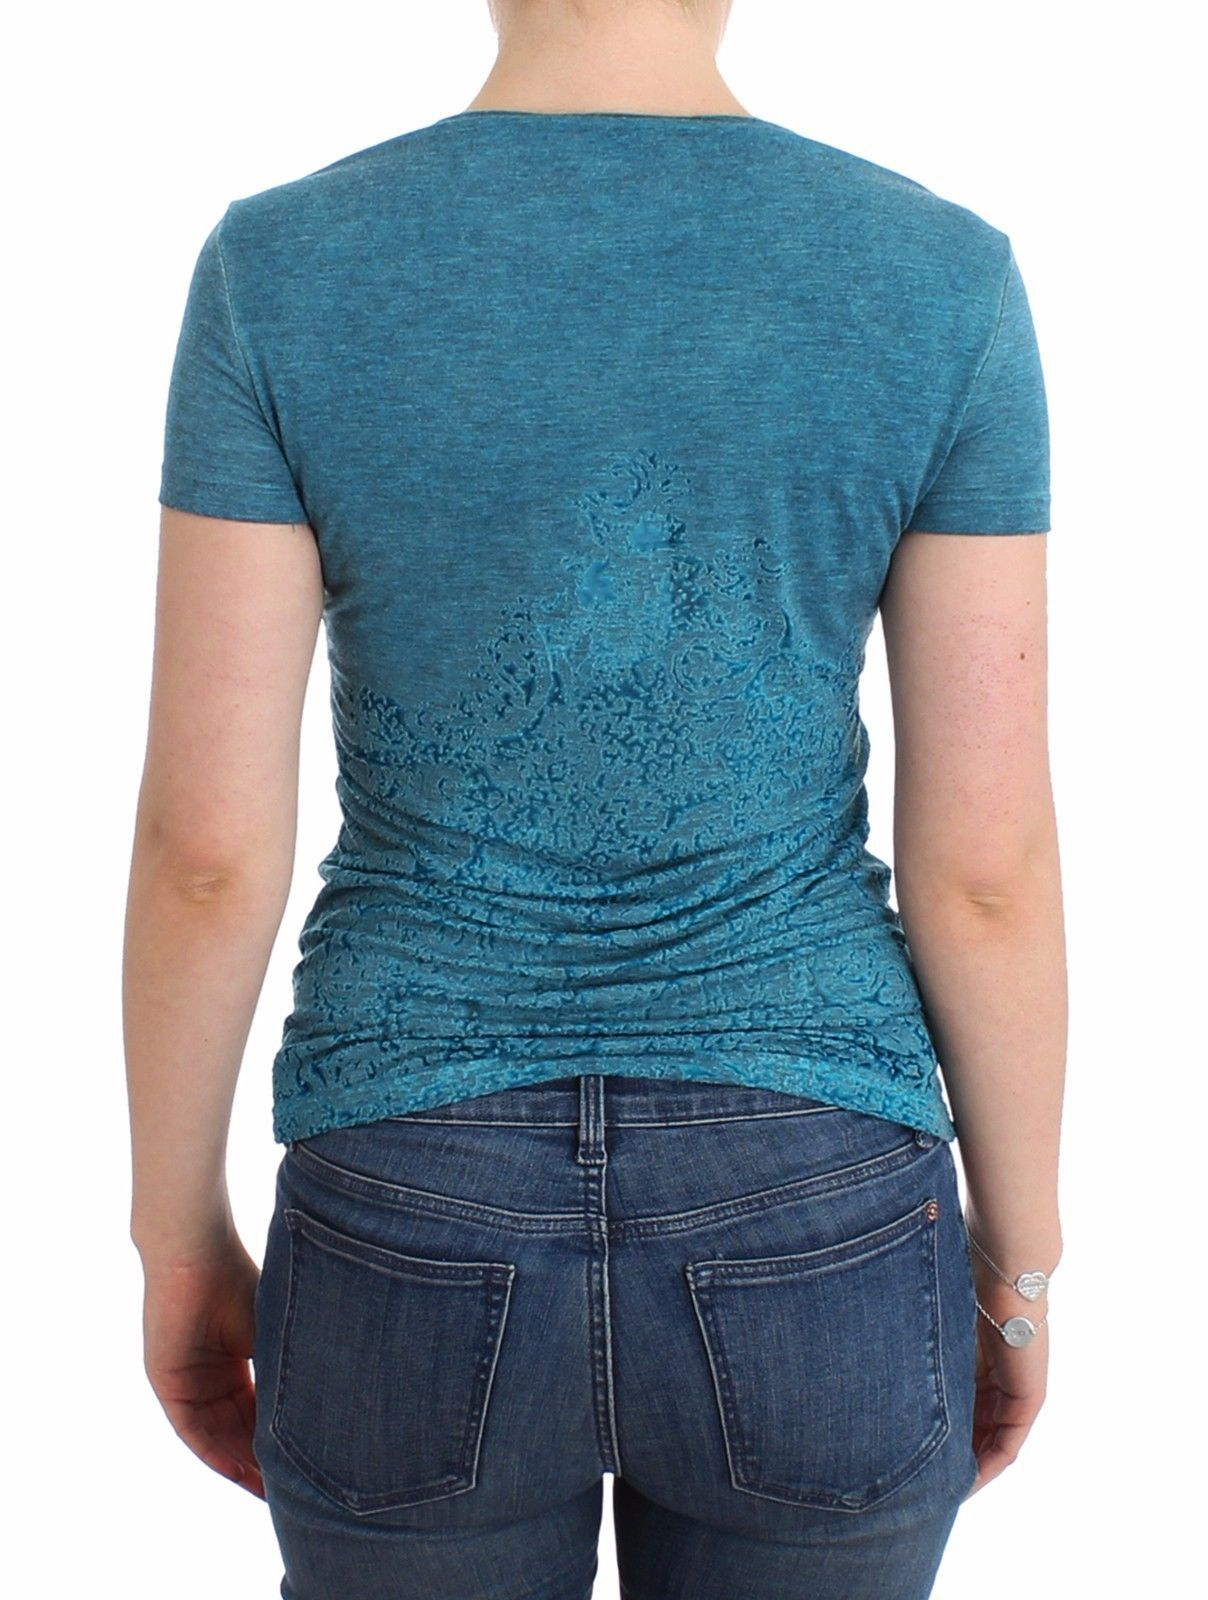 Ermanno Scervino Blue Rayon Printed T-shirt Blouse Top